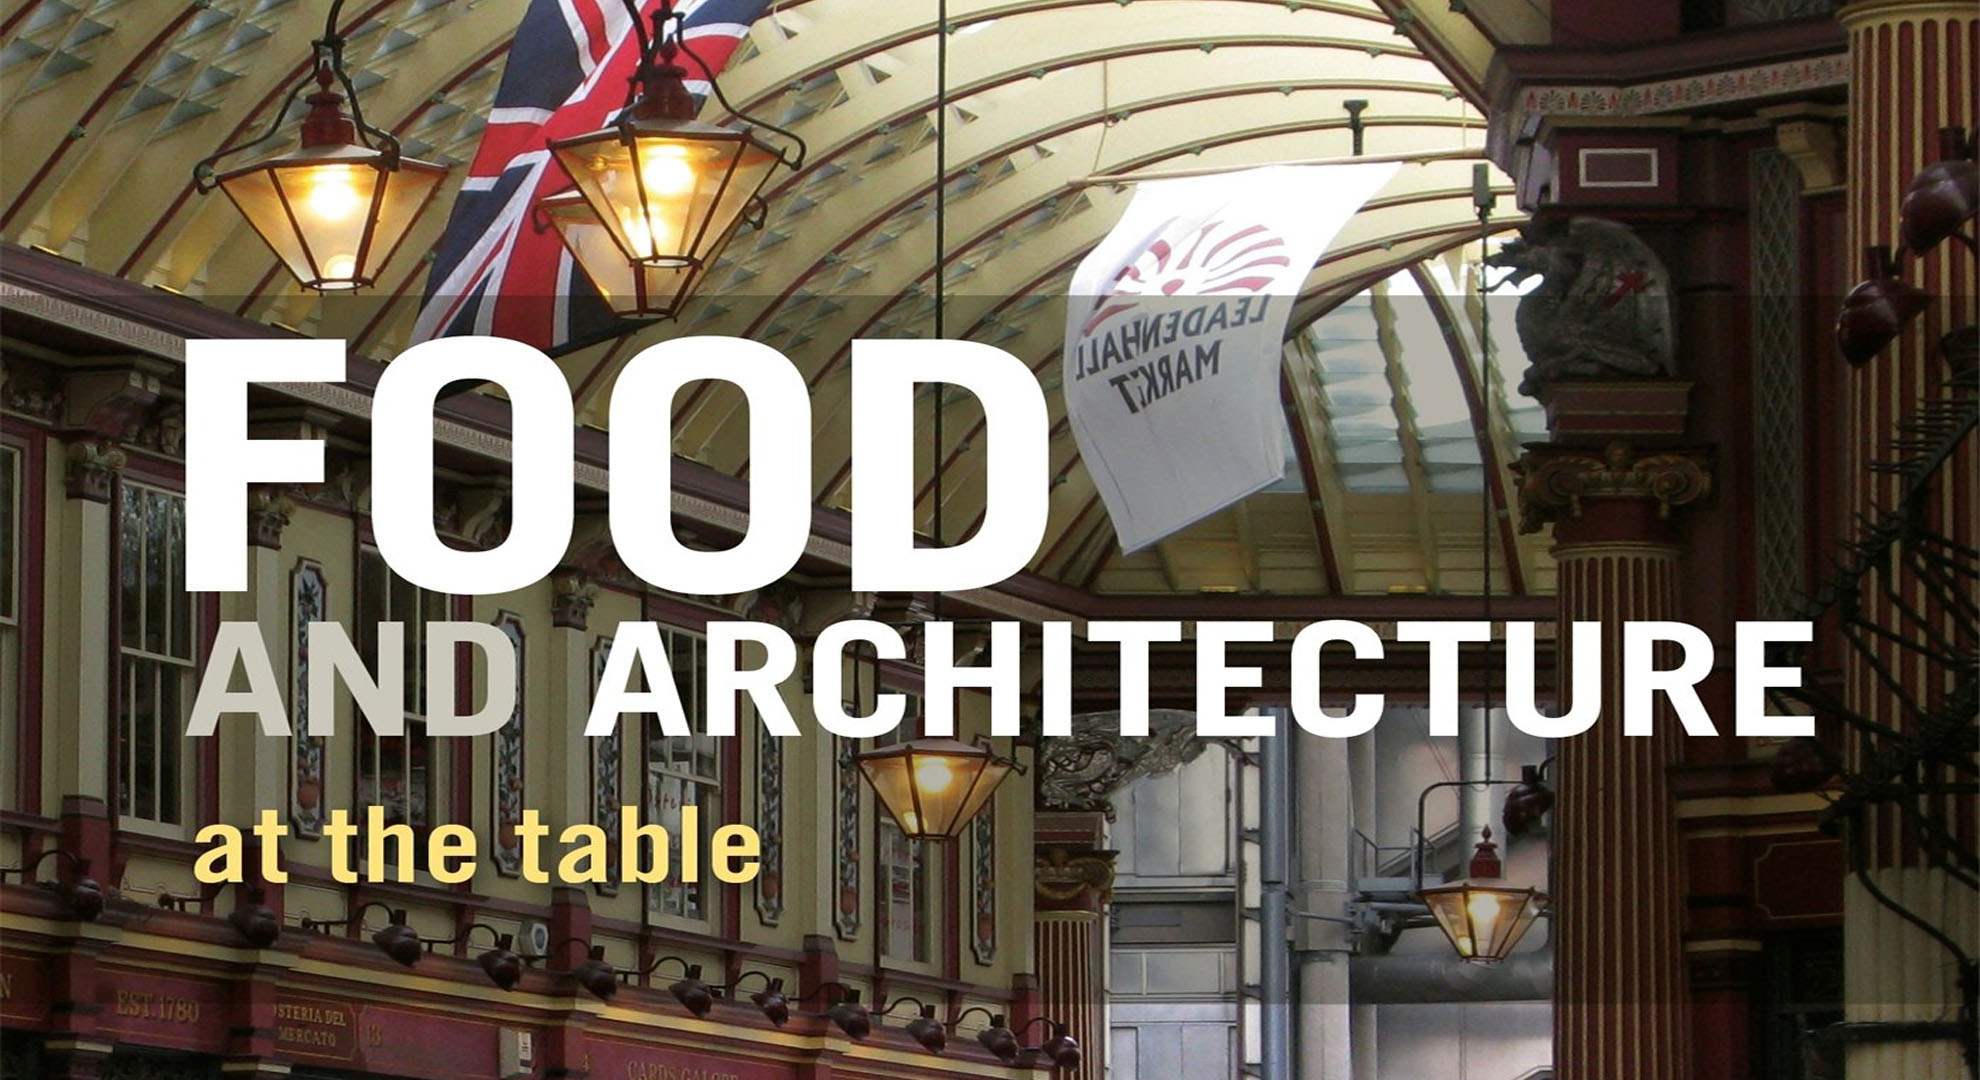 Book: Food and Architecture: at the table